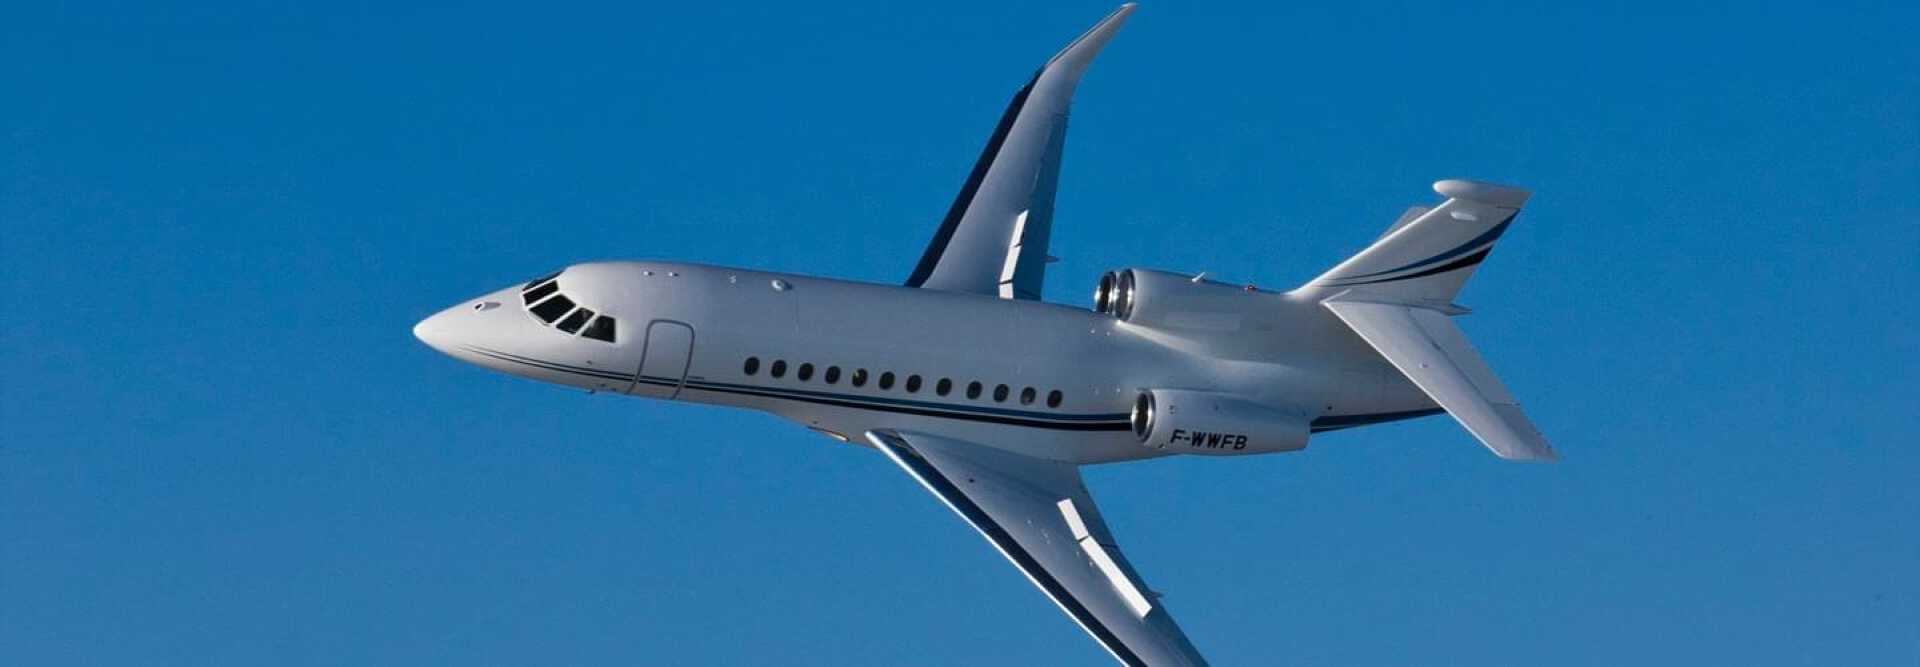 Super Large Business Jet Dassault Falcon 900EX EASy to charter for private aviation flights with LunaJets, modern exterior and a luxurious cabin